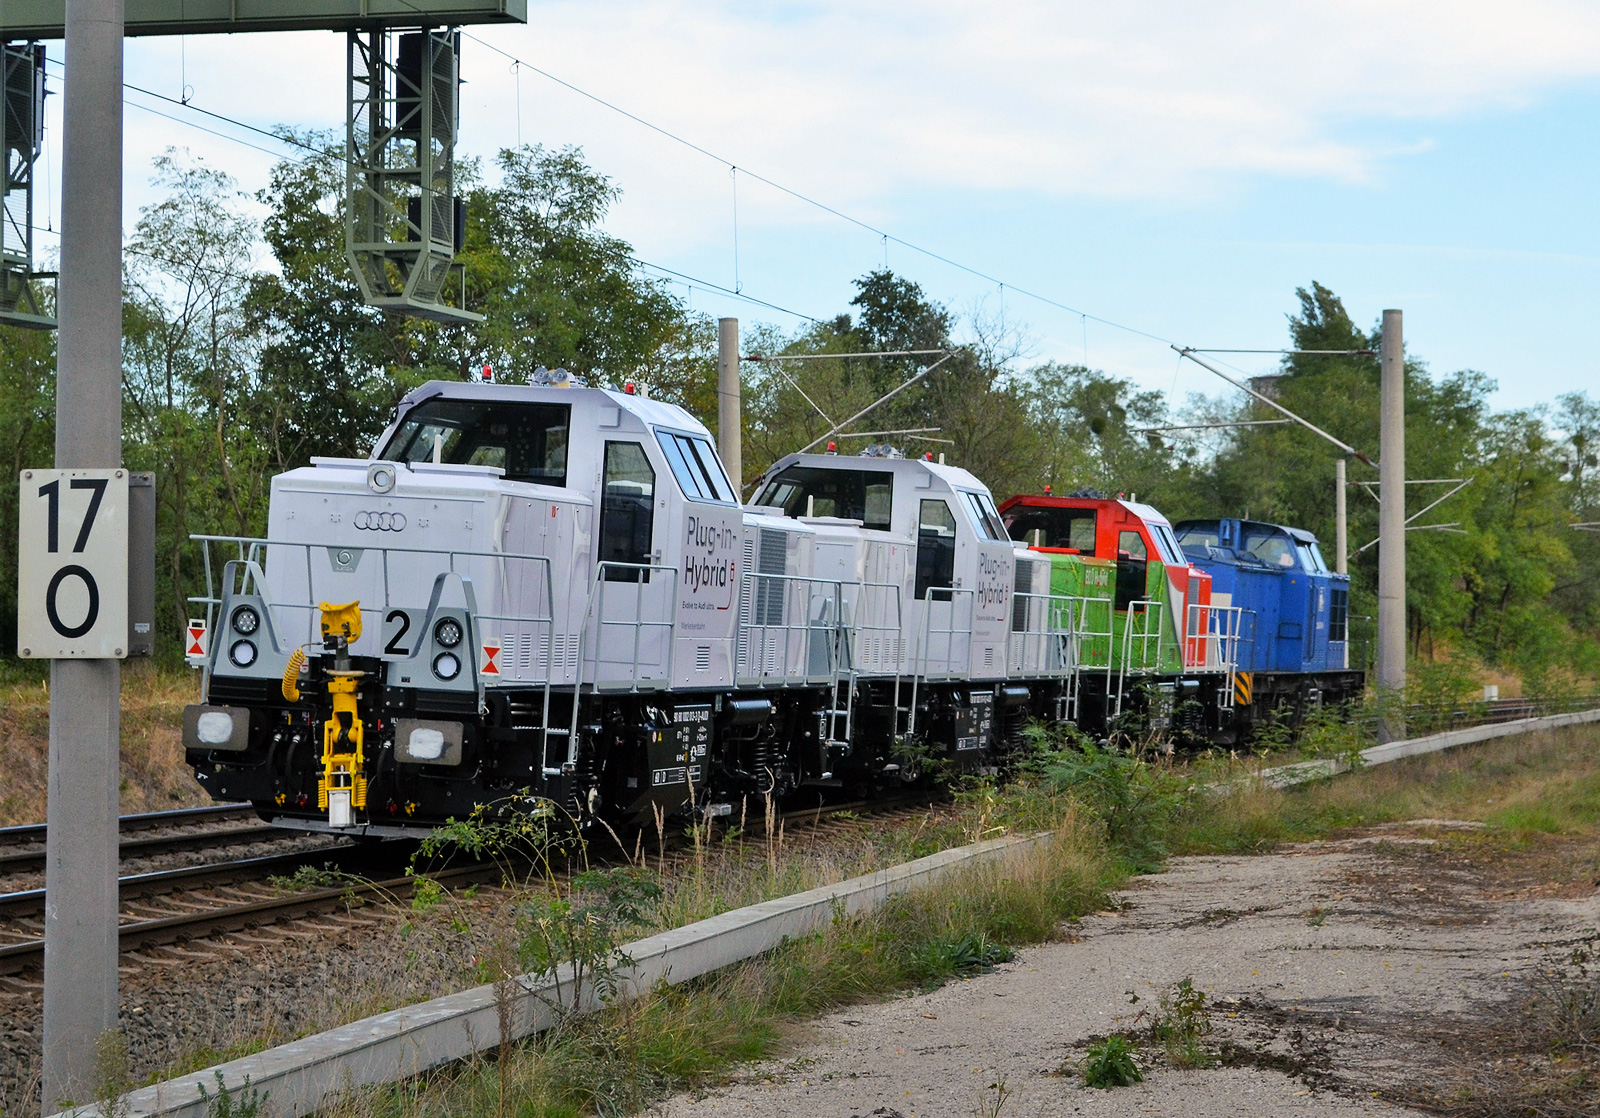 Audi 1002 013 an 010, DB 1002 009 and 204 036 at Roßlau on 29.09.16. Andreas Meier